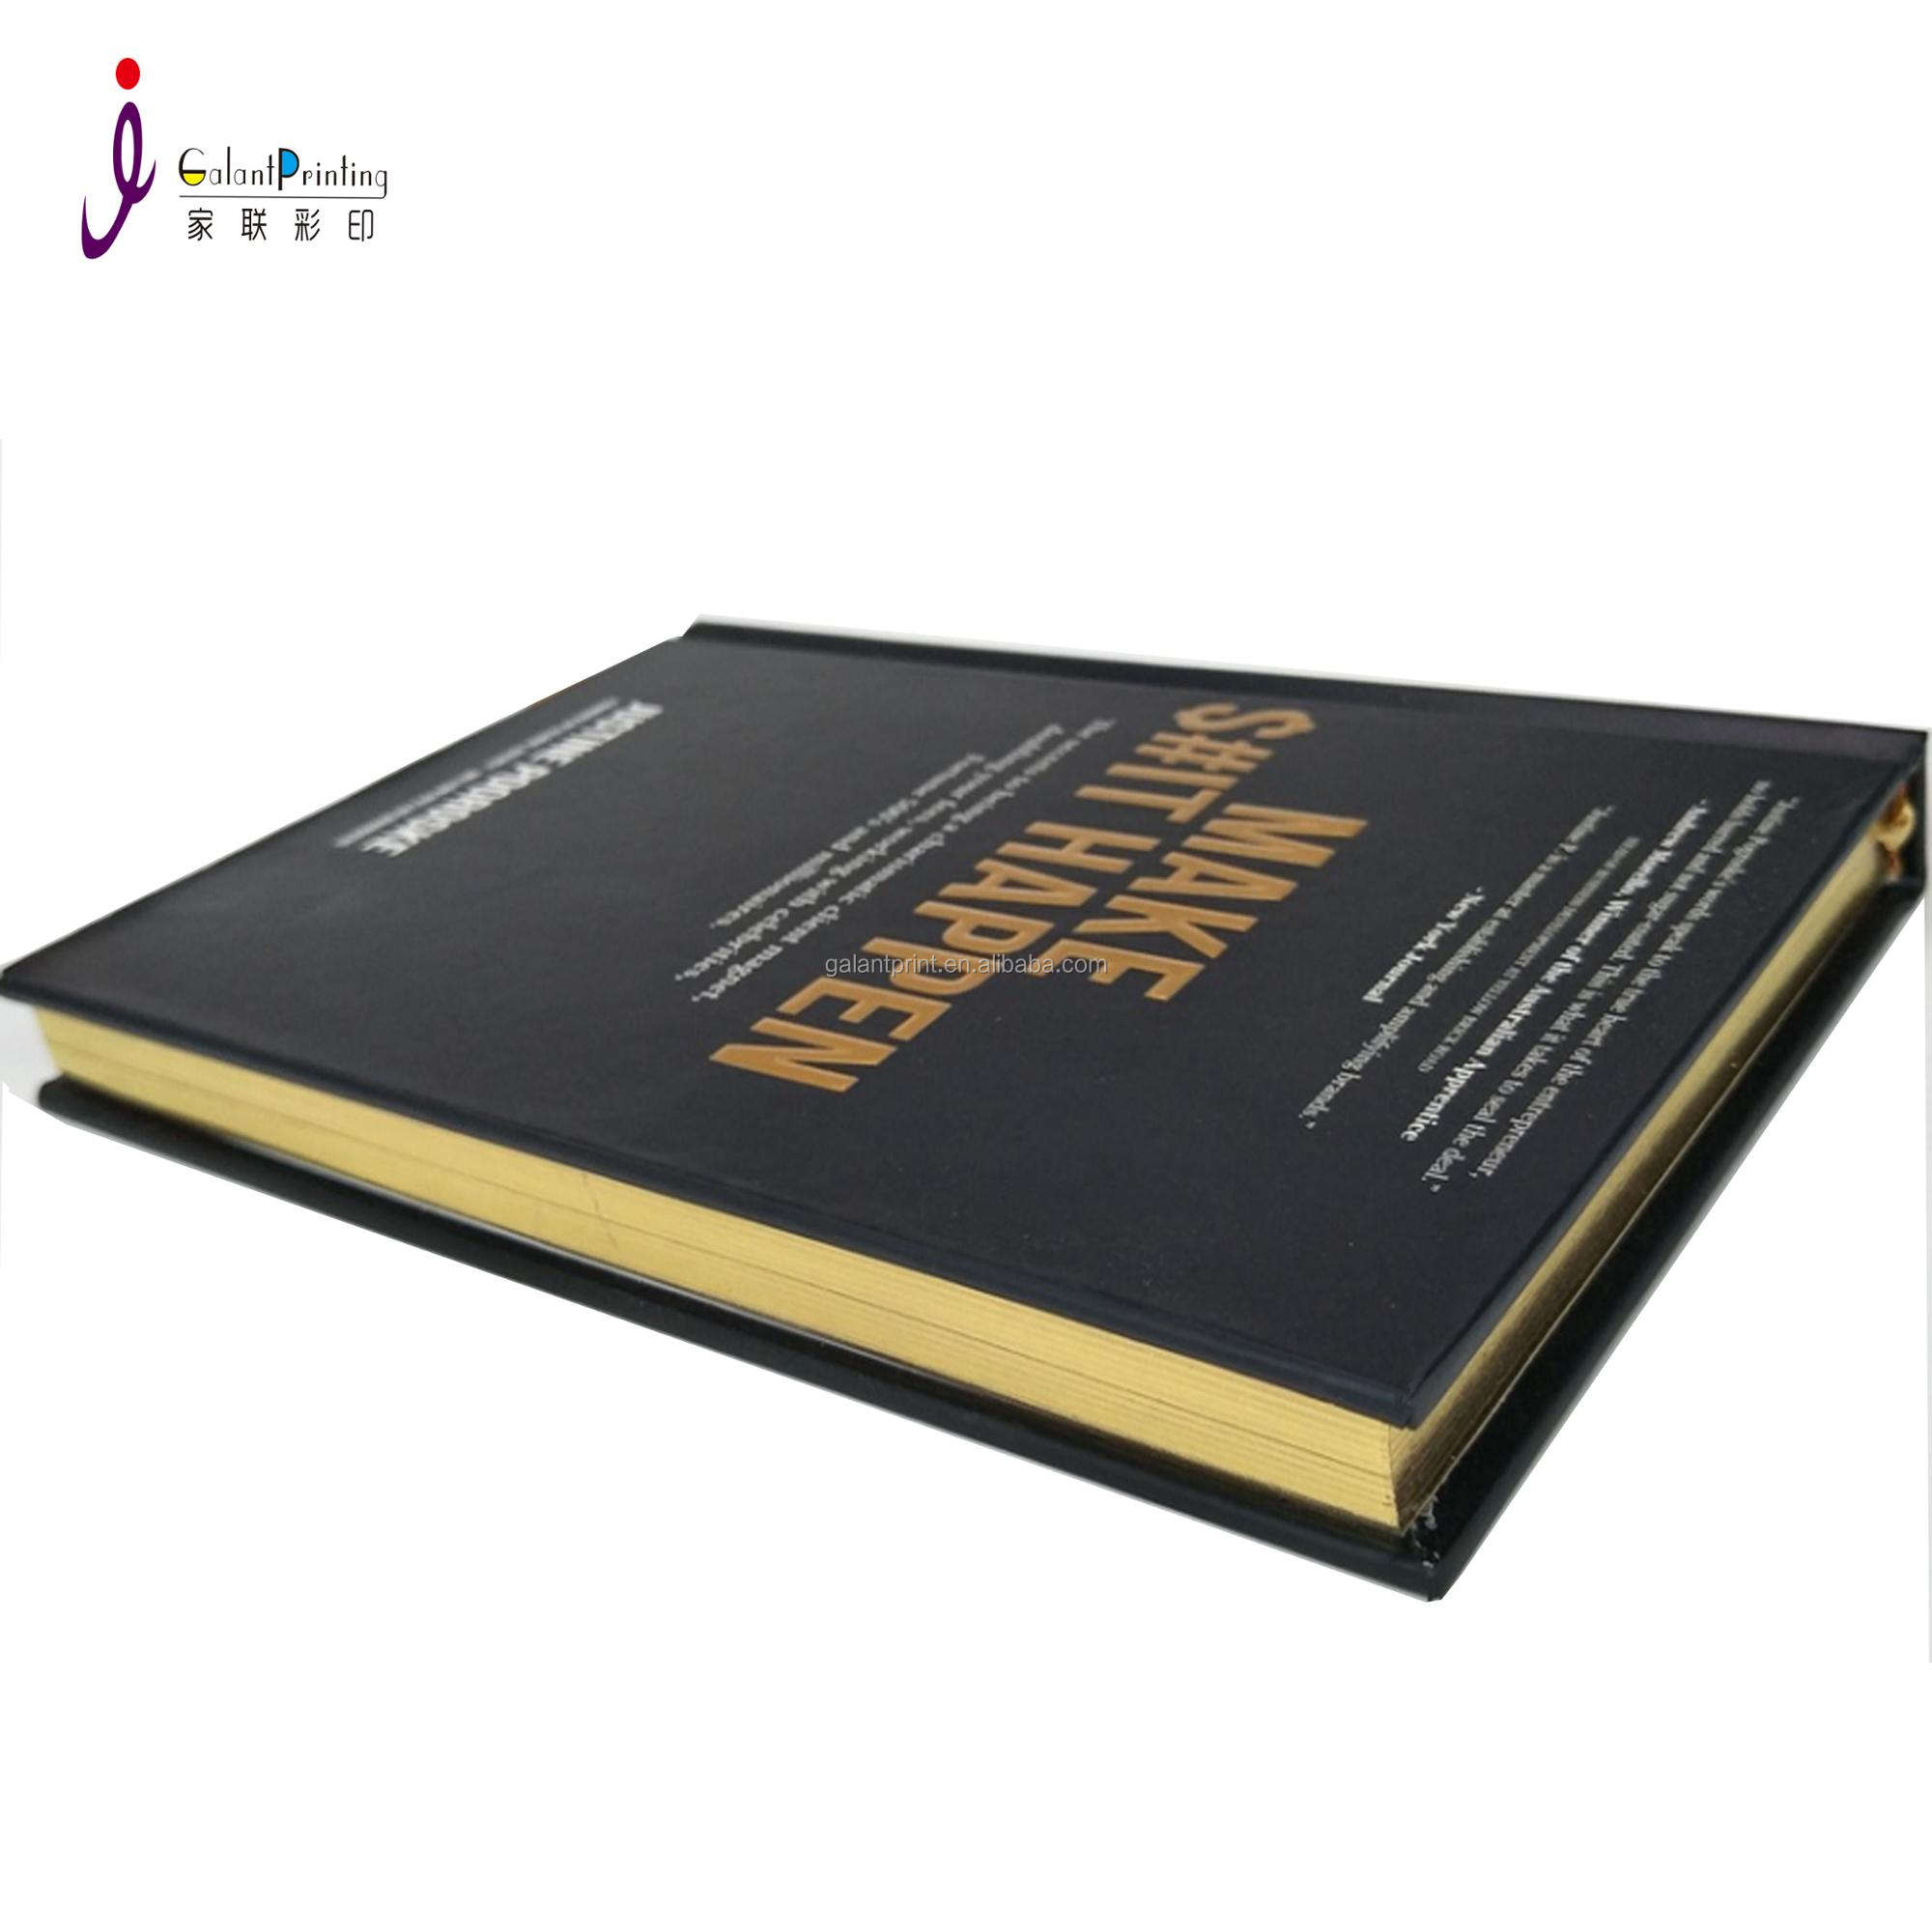 A4 Booklet/Magazine/ hardcover book Printing